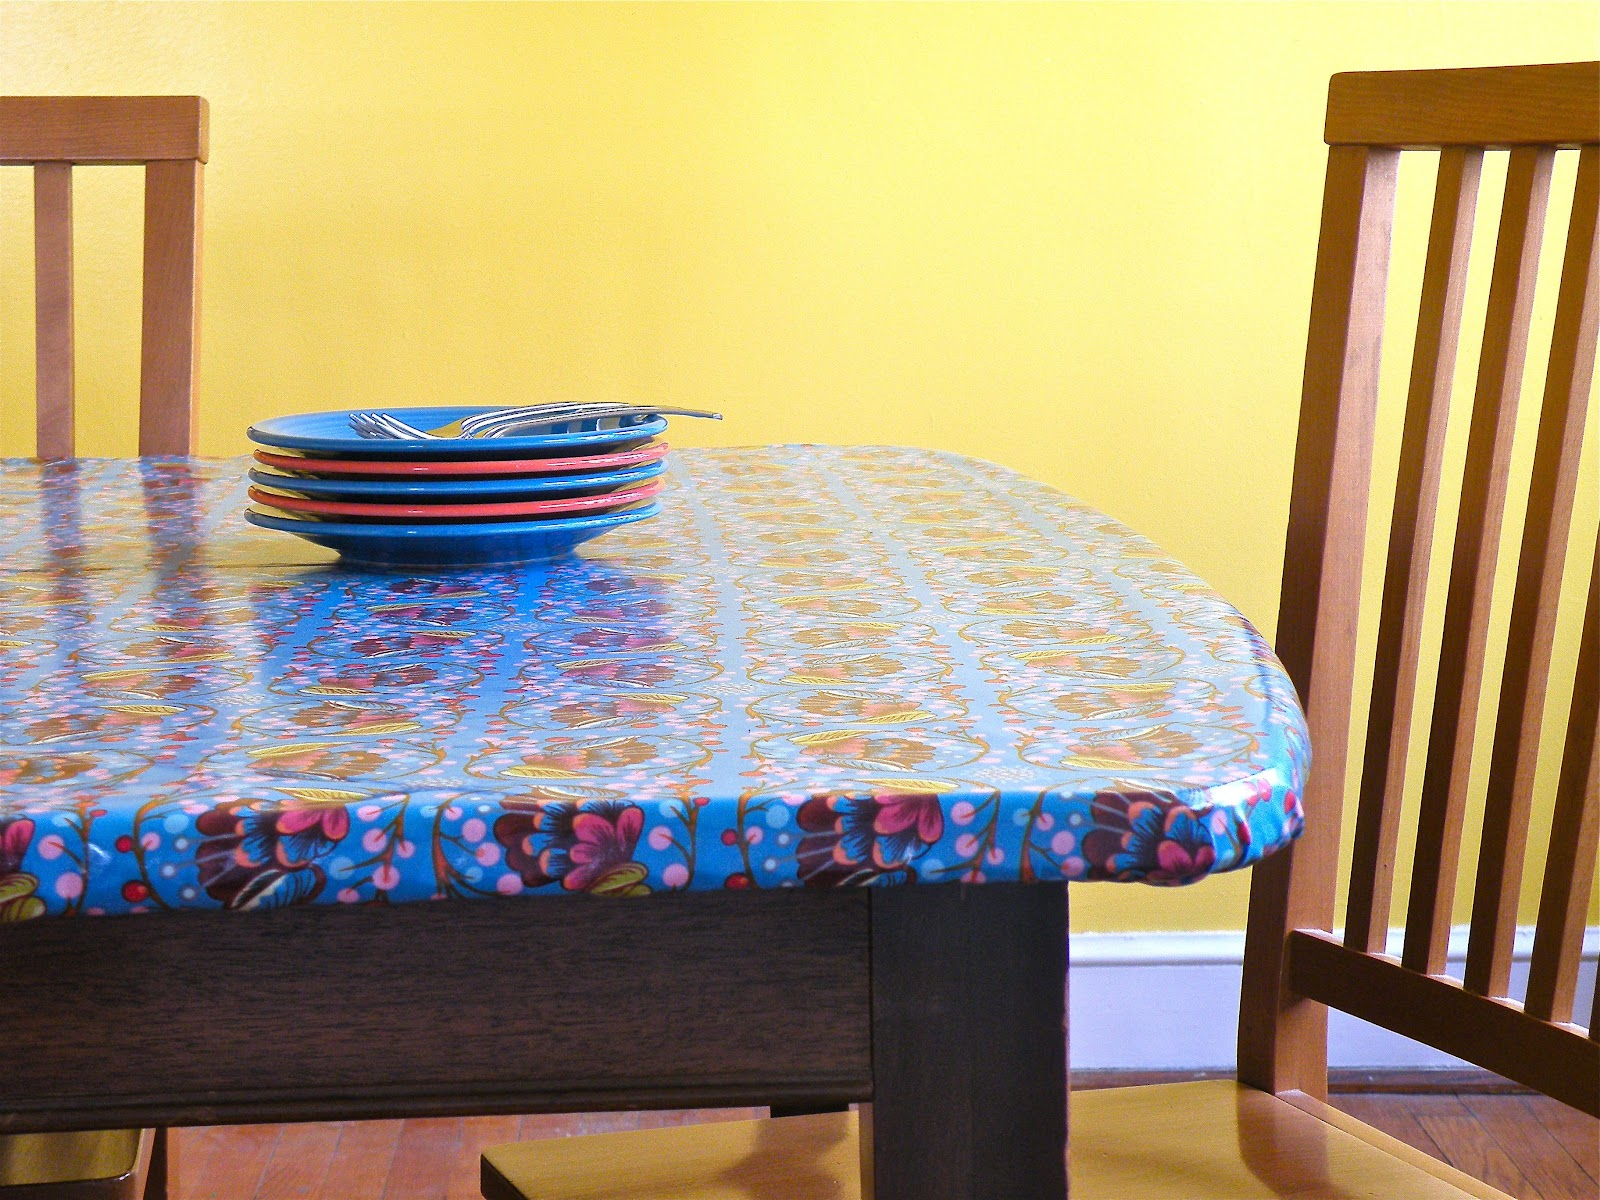 Vinyl Tablecloths | Vinyl Flannel Backed Tablecloth | Tablecloth Vinyl